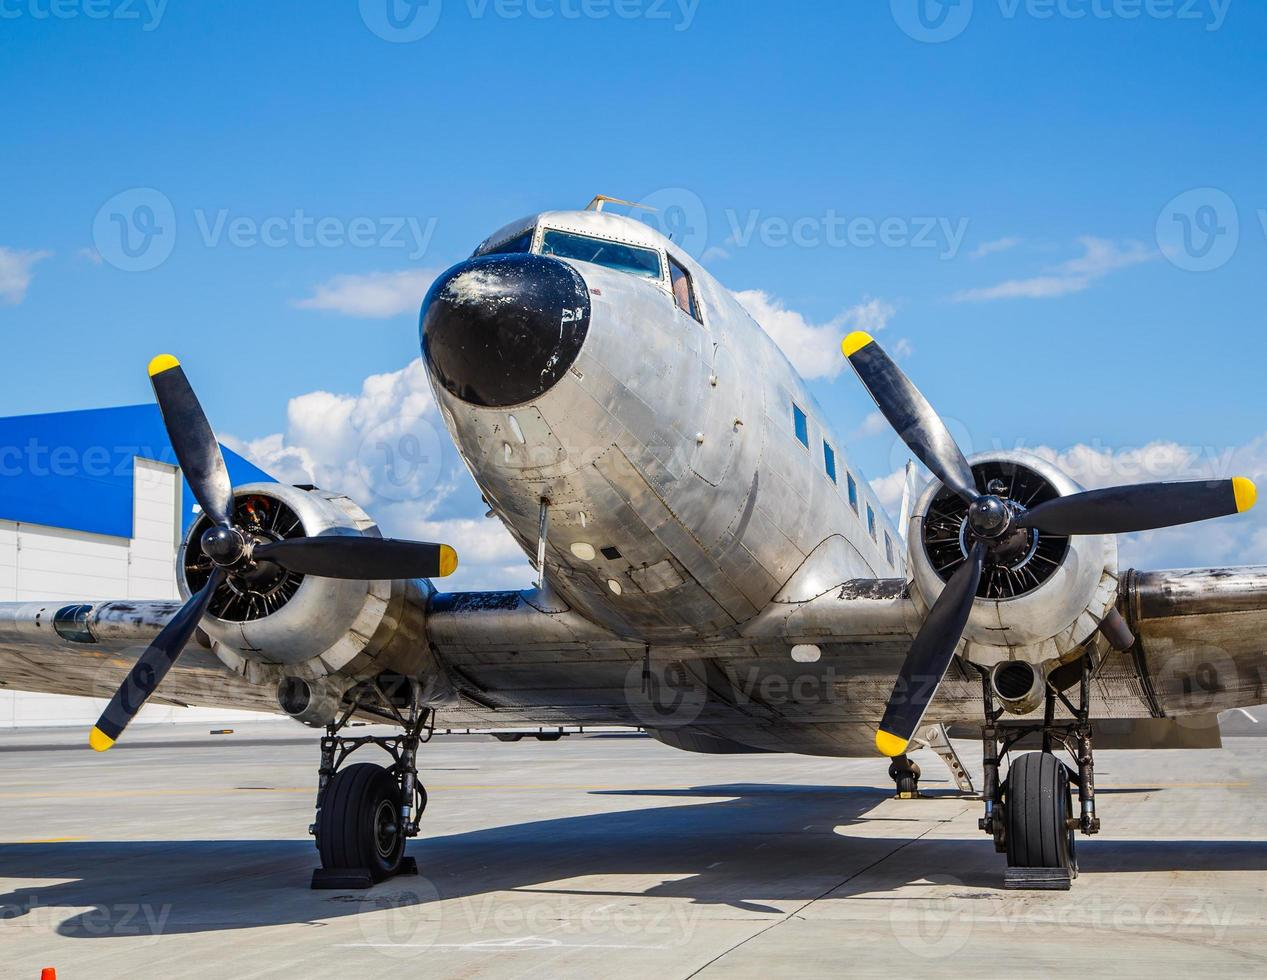 Old plane Douglas 40s at the airport photo